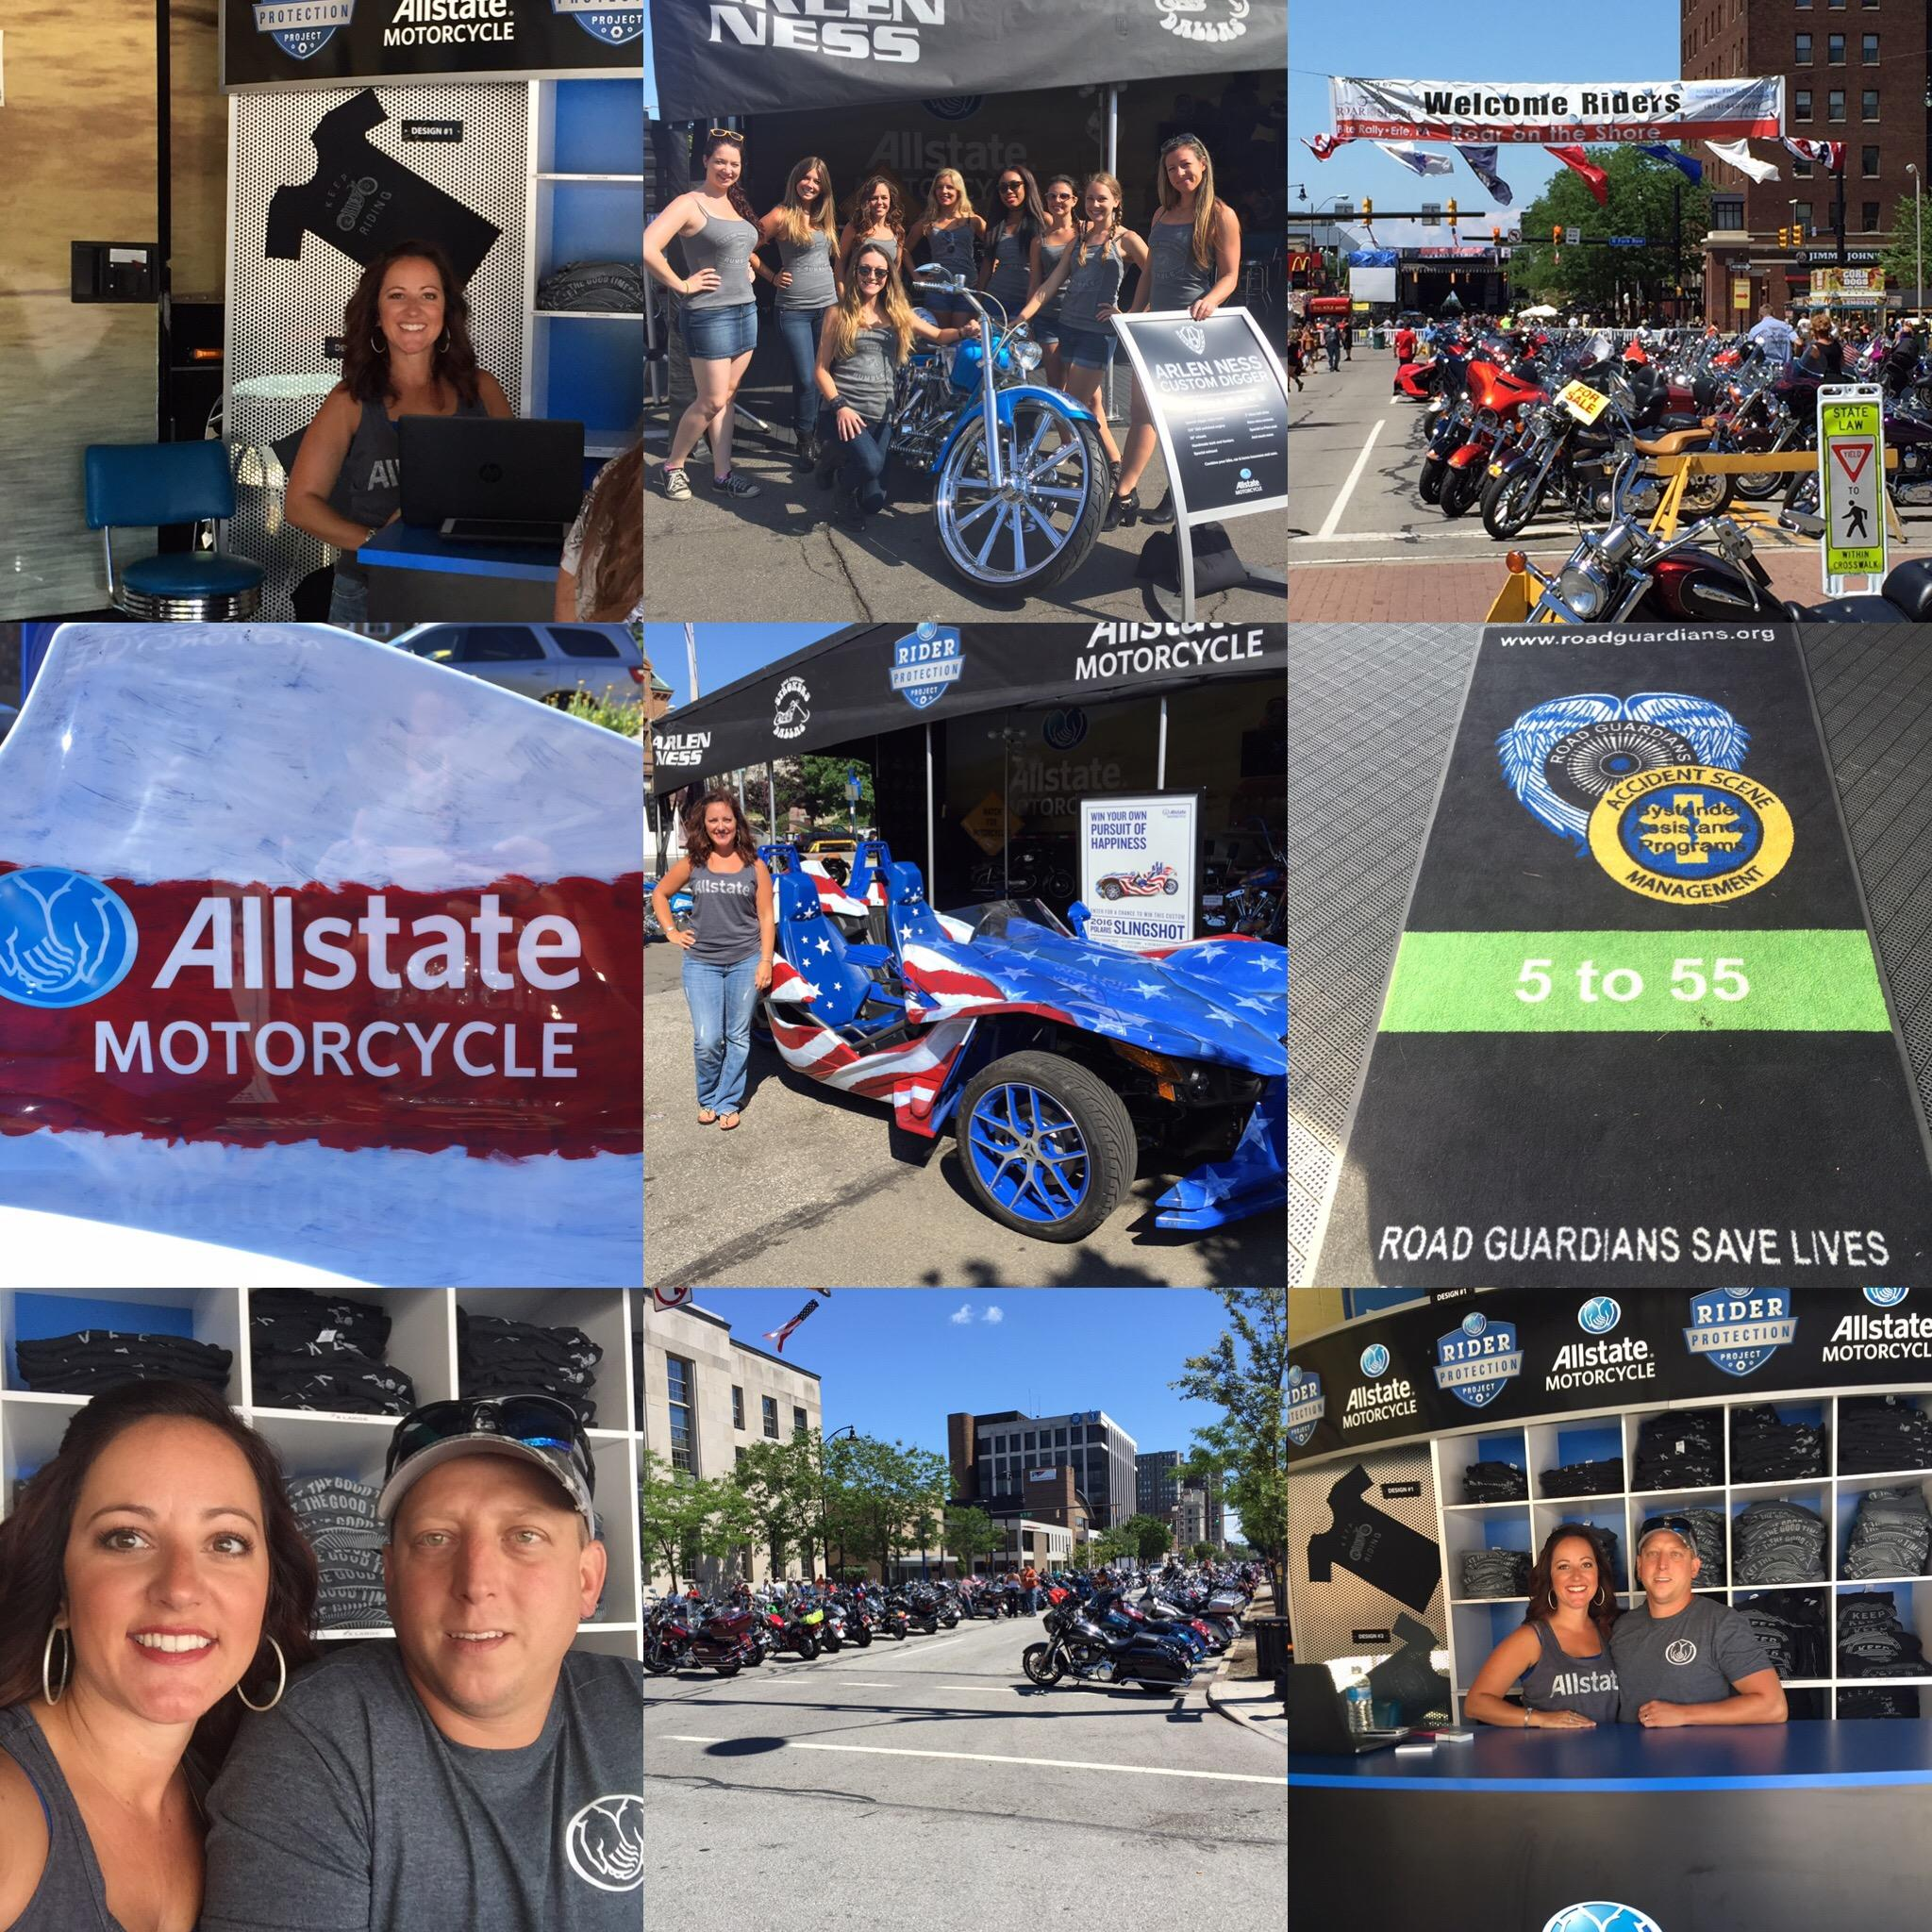 Lisa Brown: Allstate Insurance image 20